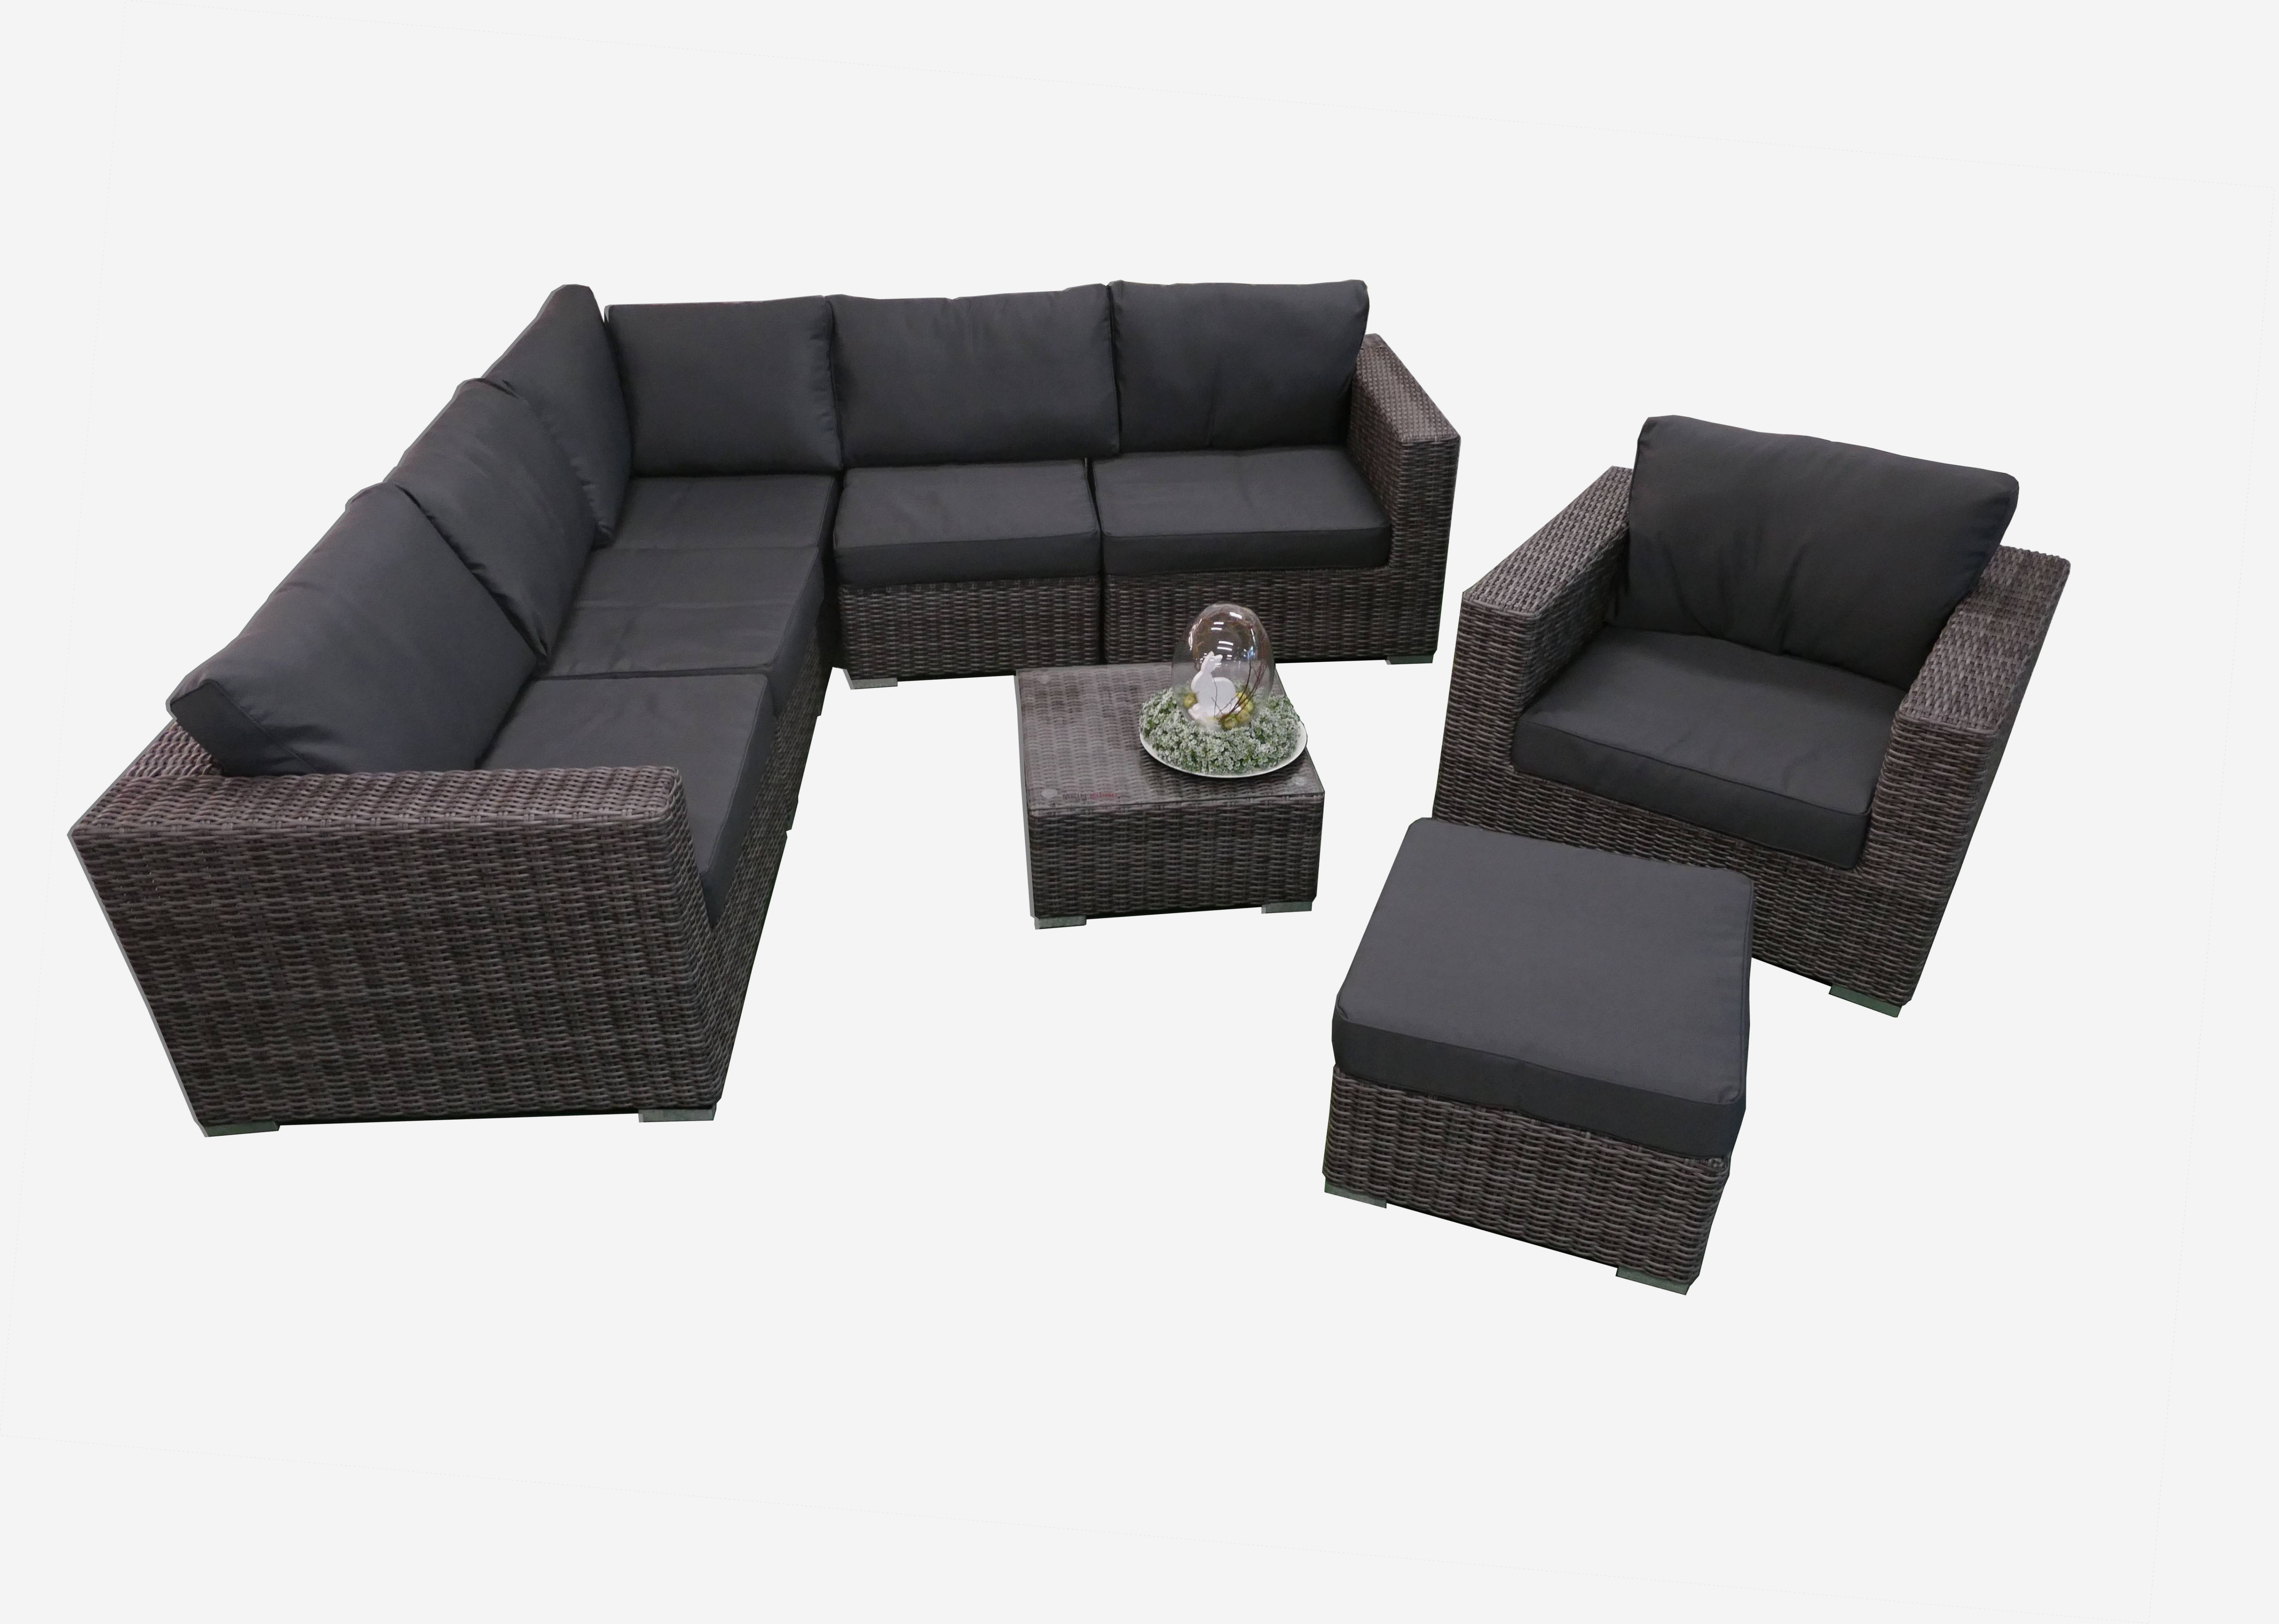 Famsa Living Room Sets Room Design Ideas Simple On Architecture with regard to Famsa Living Room Sets